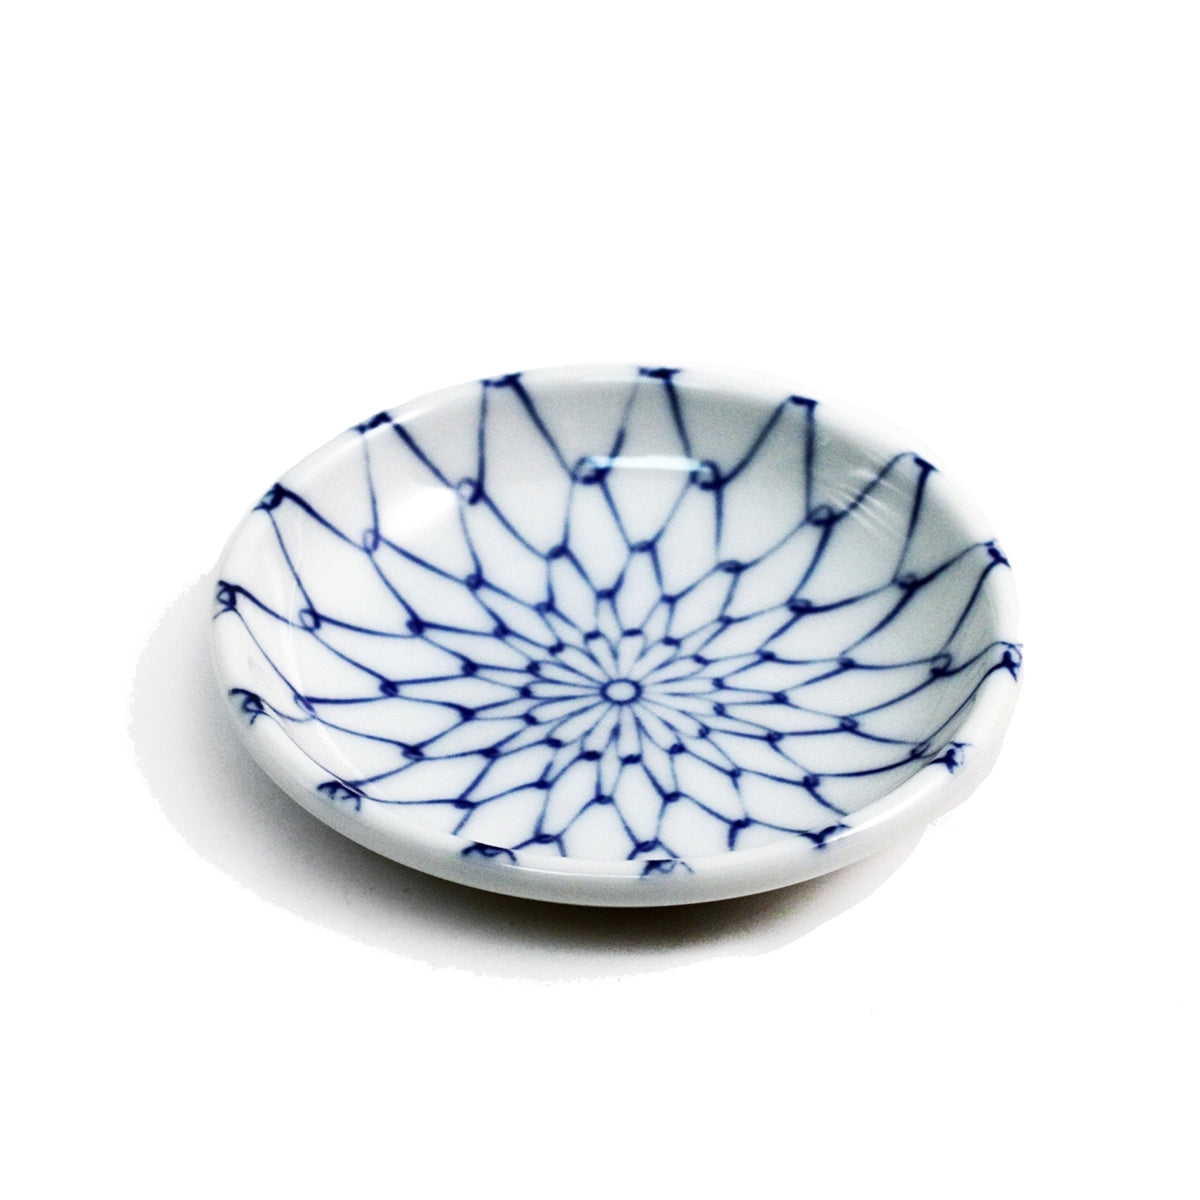 "Blue Woven Flower Soy Sauce Dish 3.75"" dia"